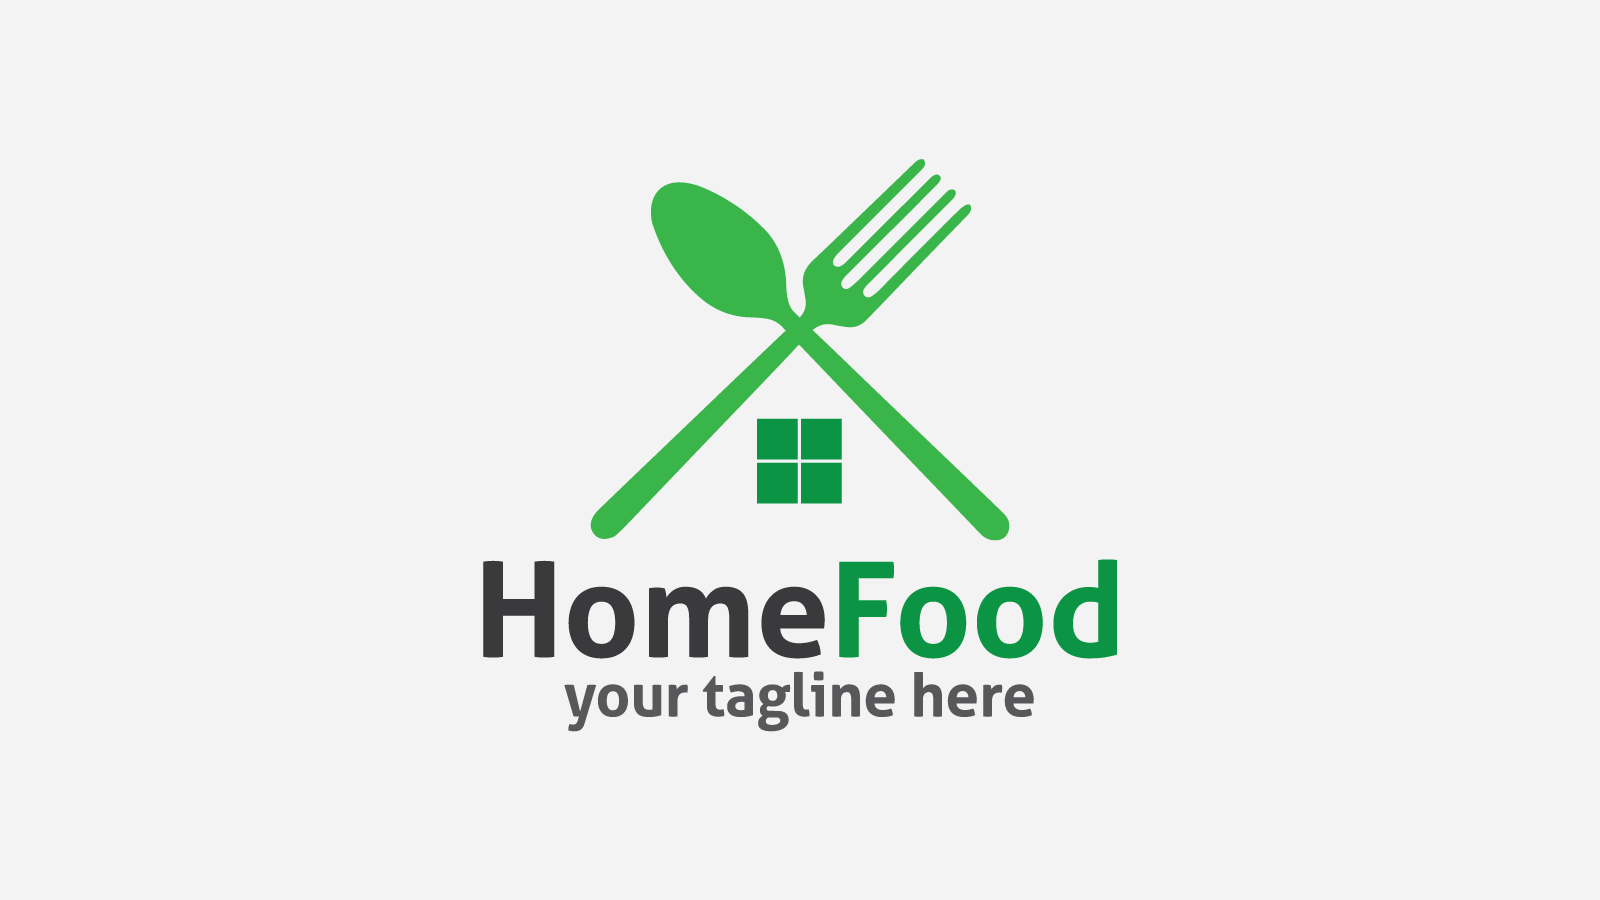 Homefood free logo design zfreegraphic free vector logo downloads homefood free business logo design template restaurant wajeb Images